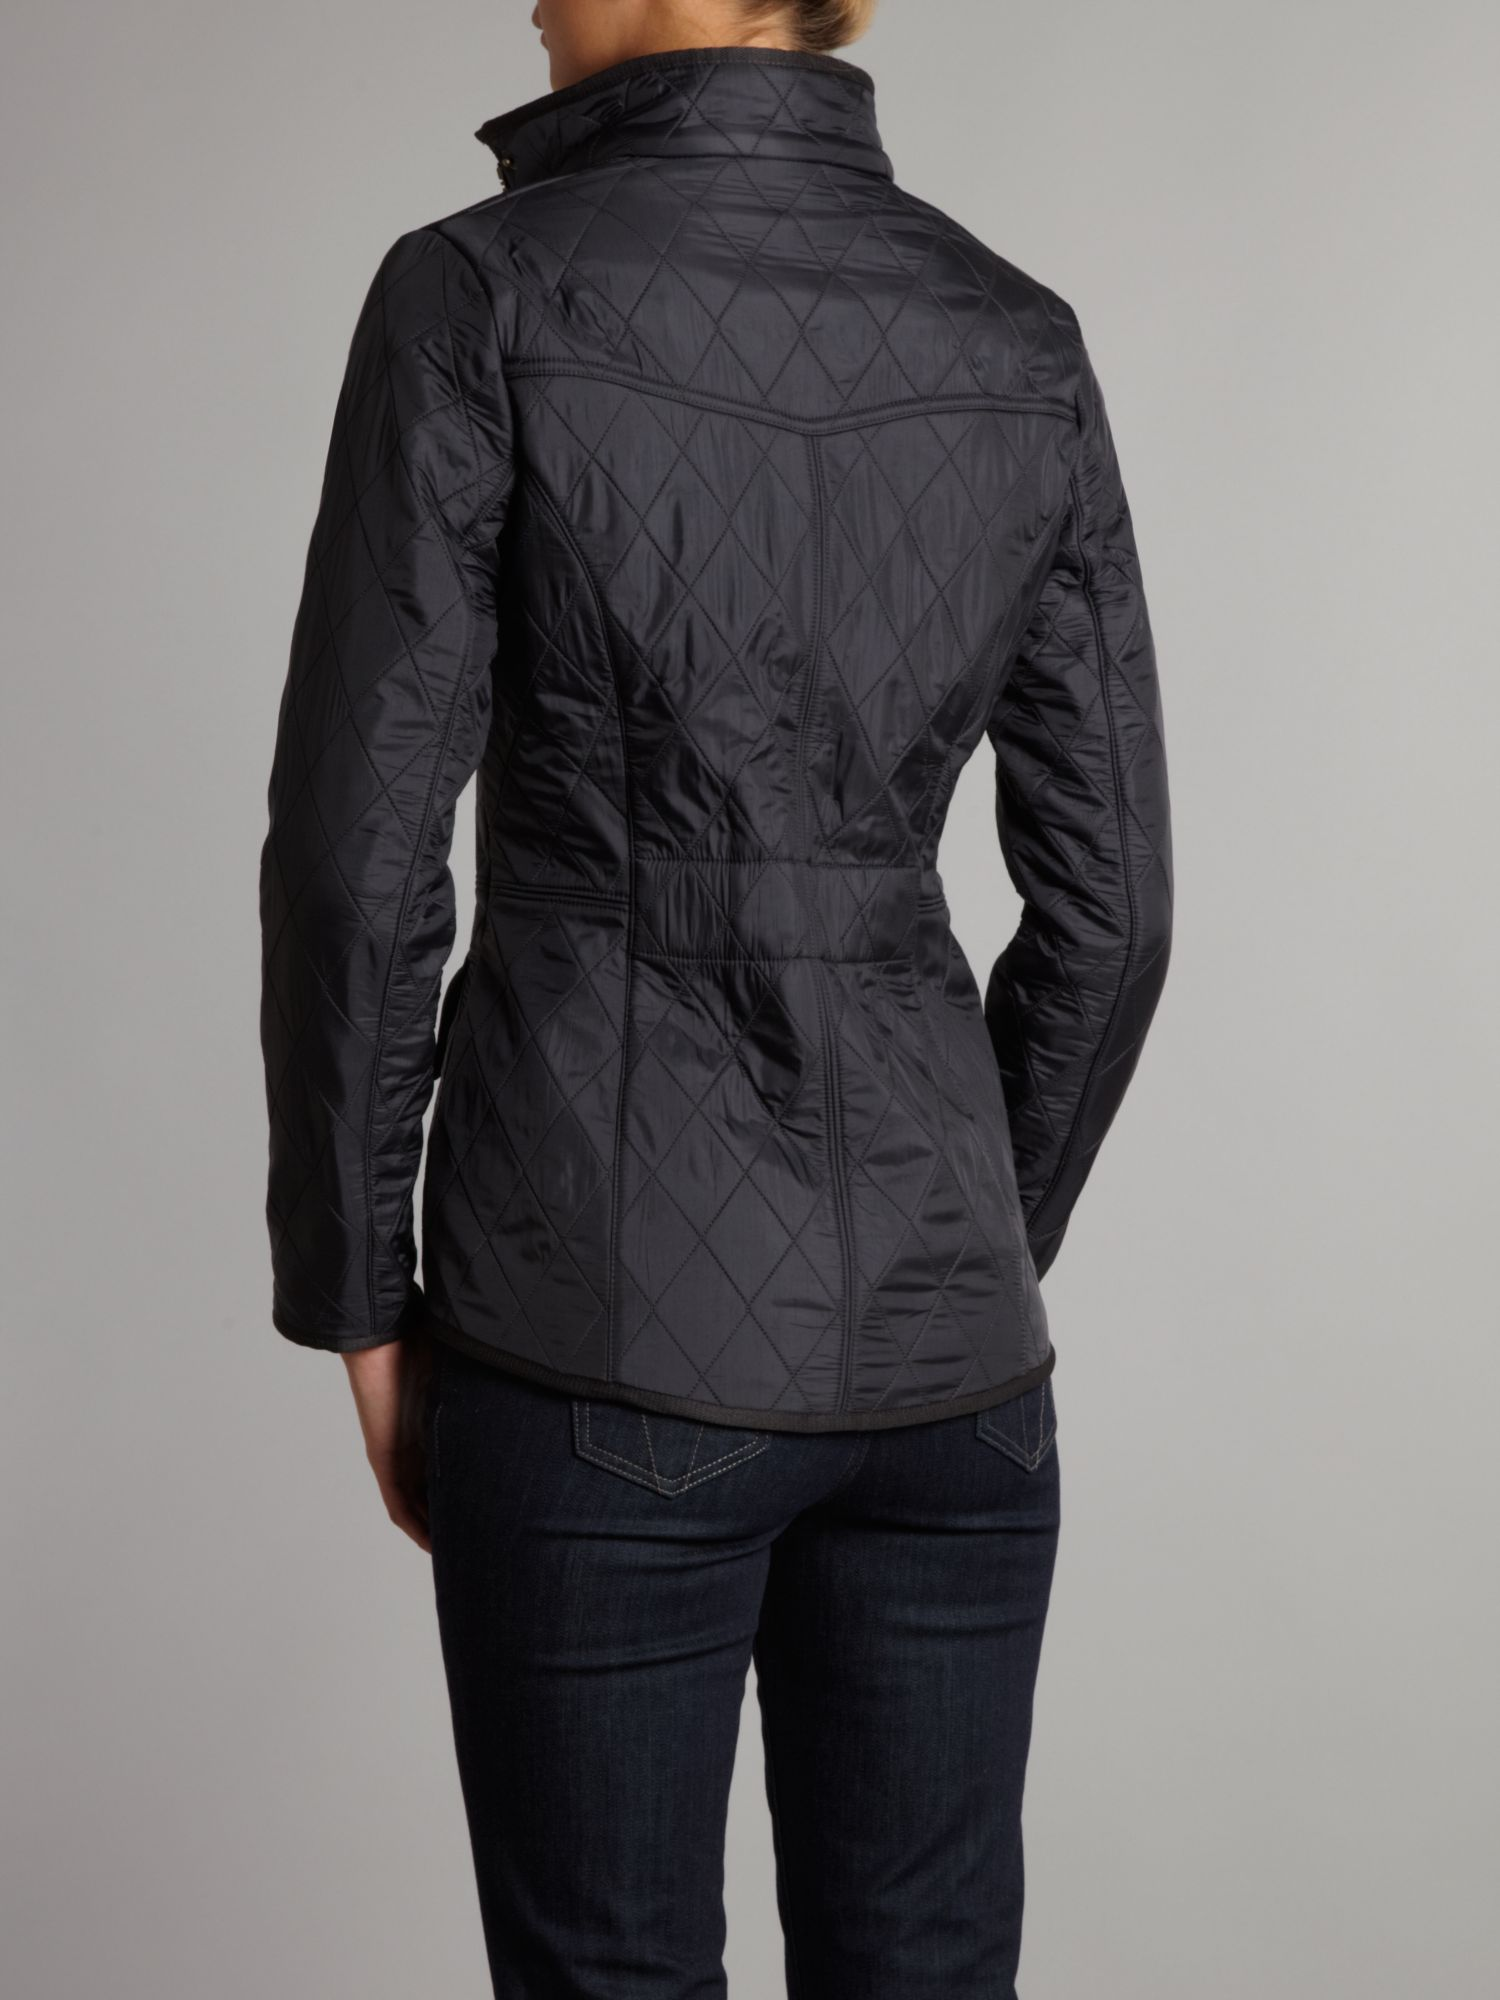 Cavalary polarquilt jacket